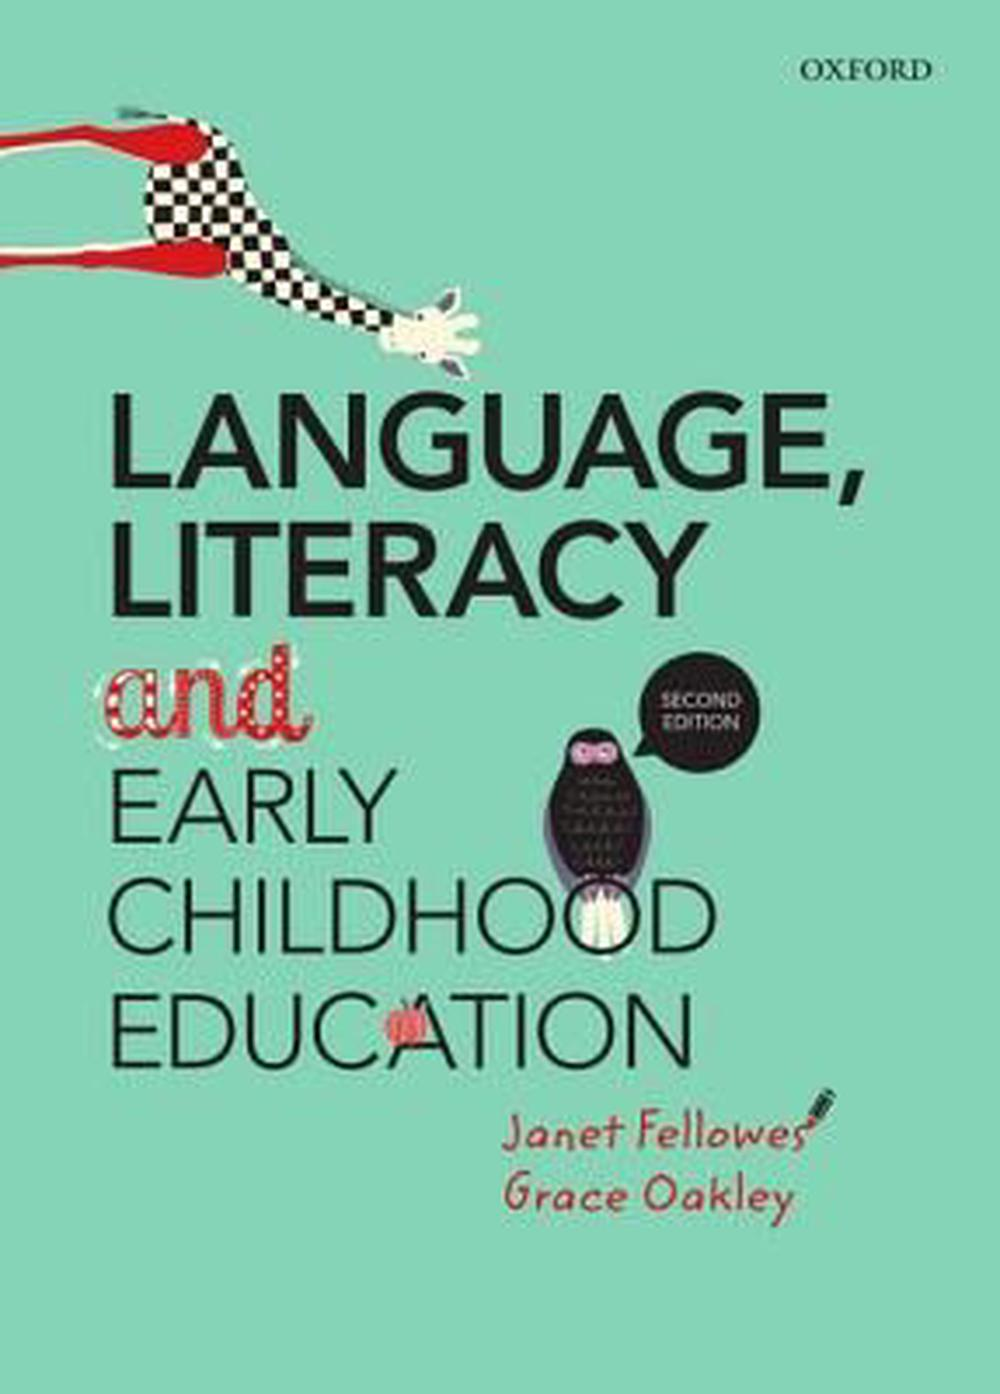 Language, Literacy and Early Childhood Education, 2nd Edition